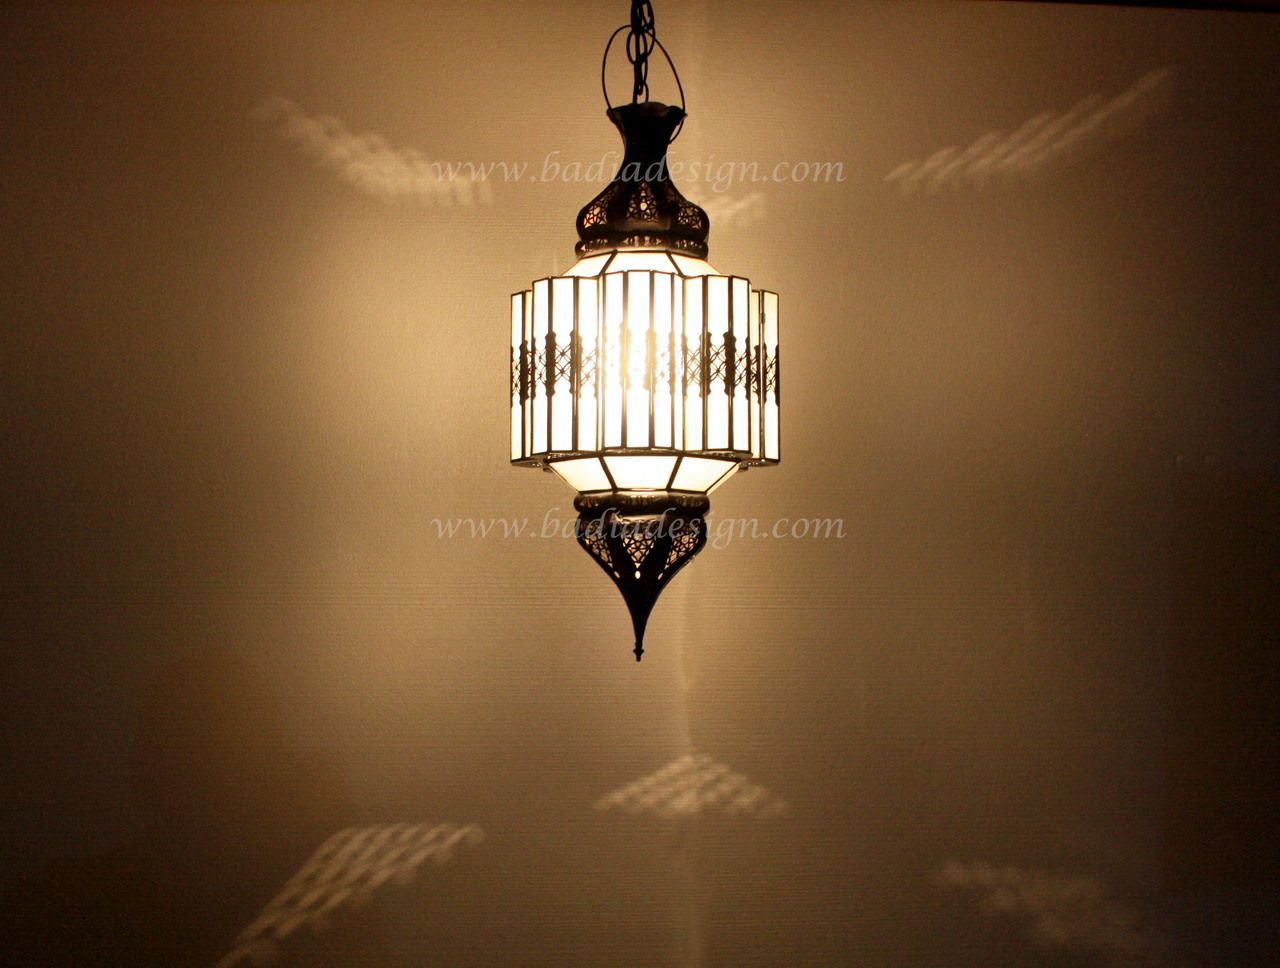 Badia Design Inc Store   Hanging Glass Lantern With Clear Glass   (http:/